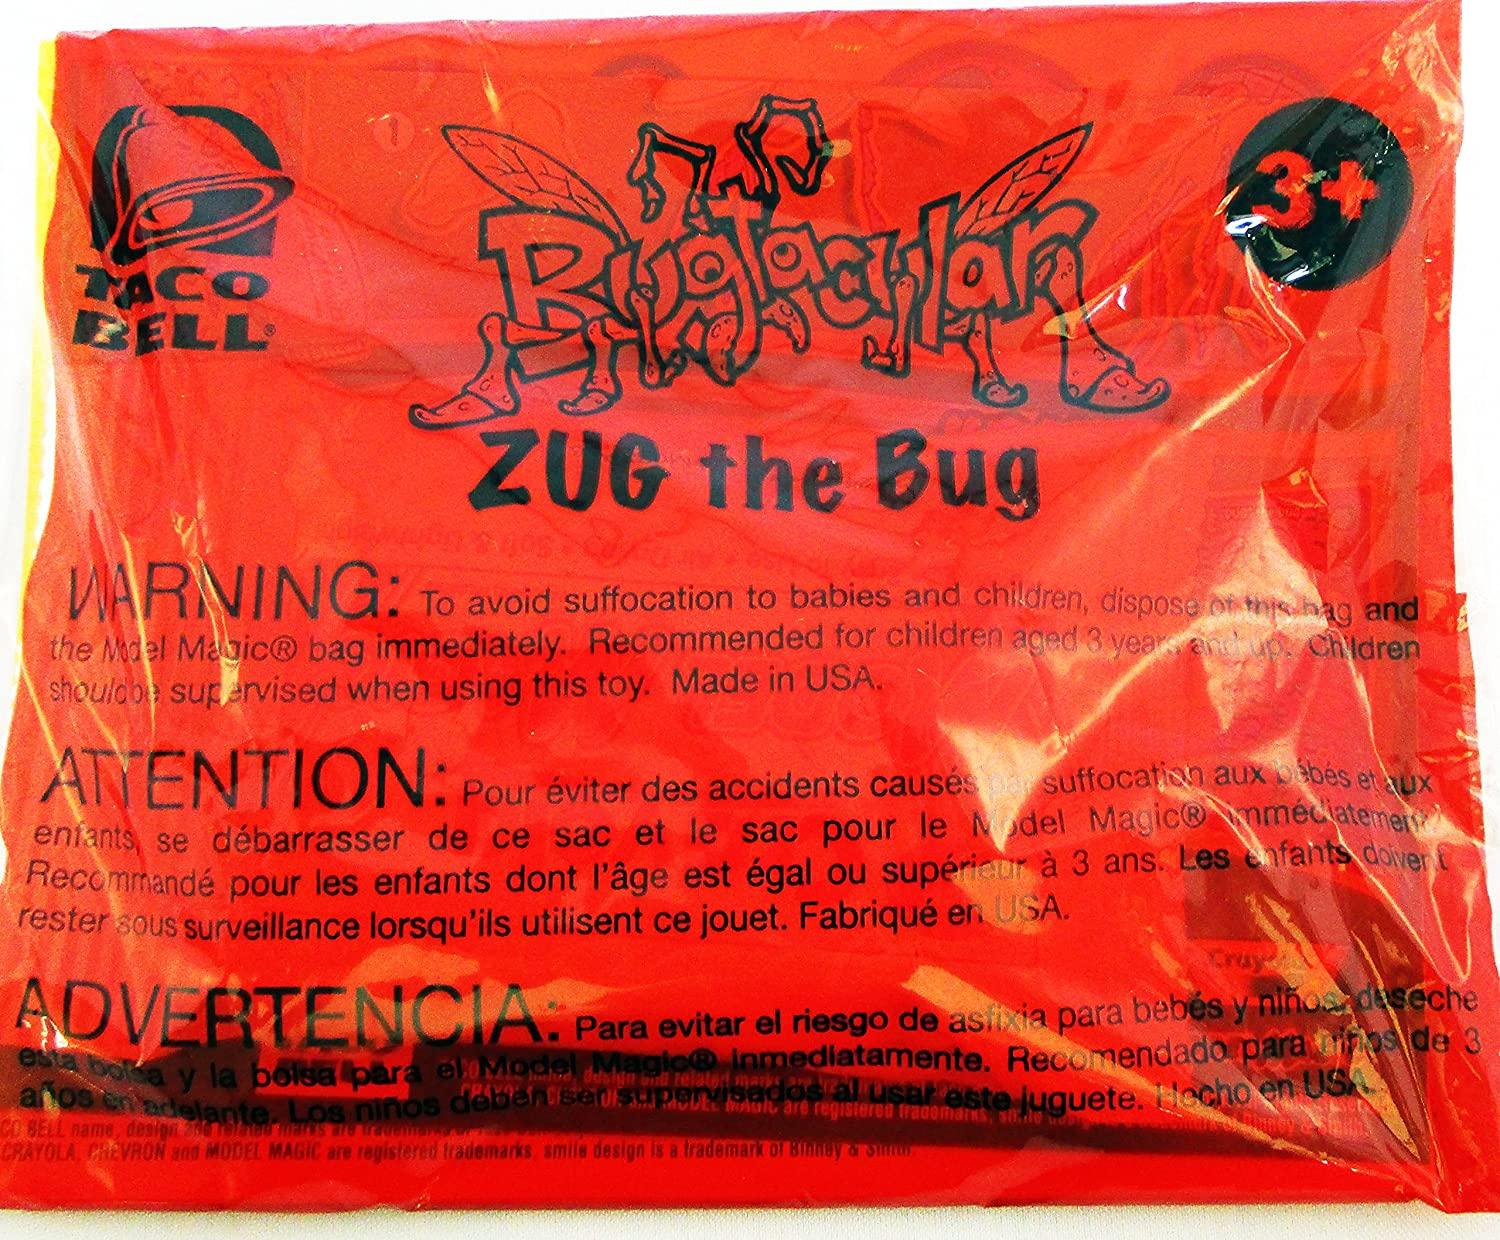 Amazon.com   Taco Bell Kids Toy Bugtacular Zug the Bug   Everything Else 944217ddb3d64